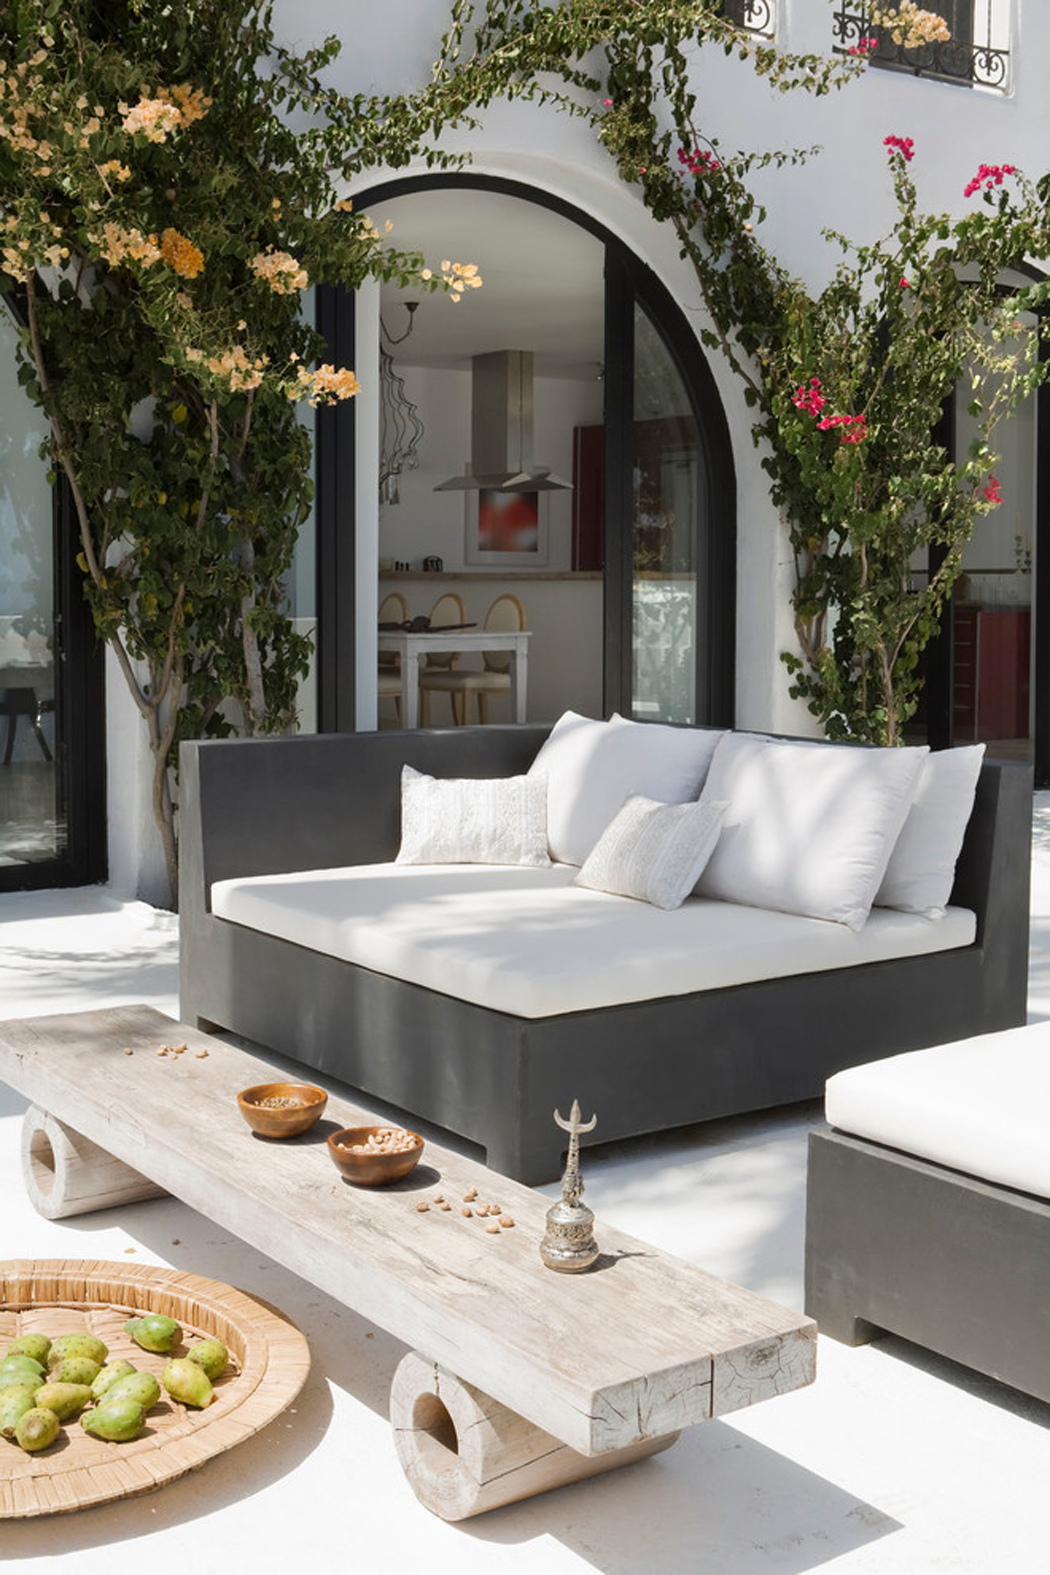 salon de jardin offrant tout le confort ncessaire pour des vacances agrables with casa mobilier. Black Bedroom Furniture Sets. Home Design Ideas